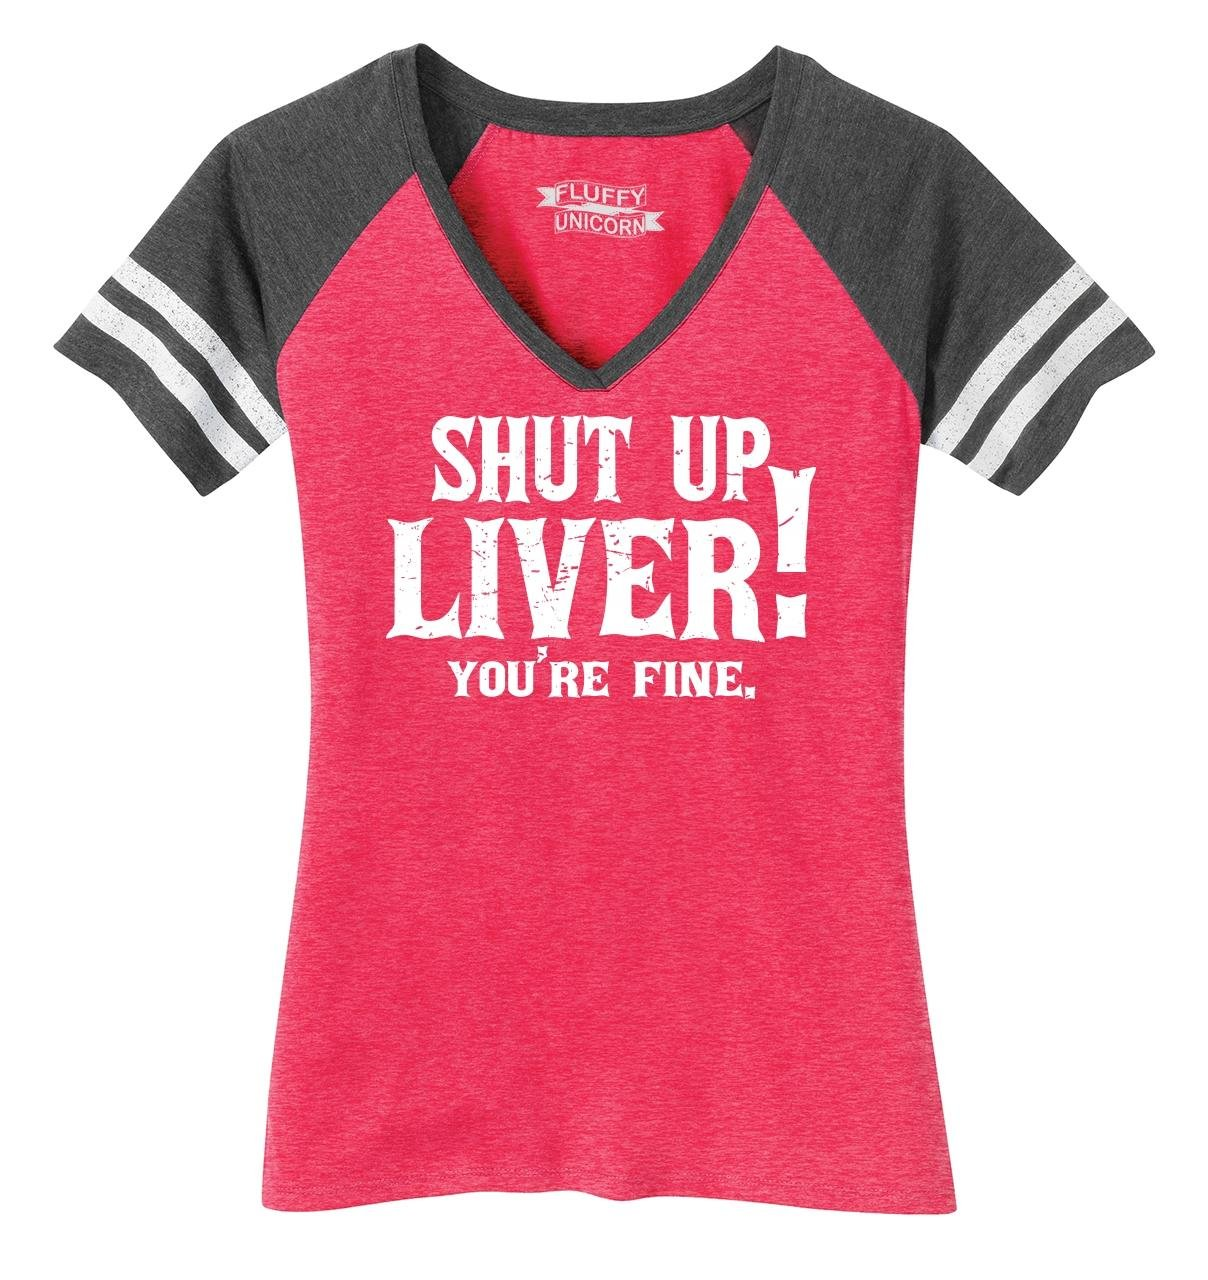 Ladies Game V-Neck Tee Shut up Liver You're Fine Heathered Watermelon/Heathered Charcoal XL